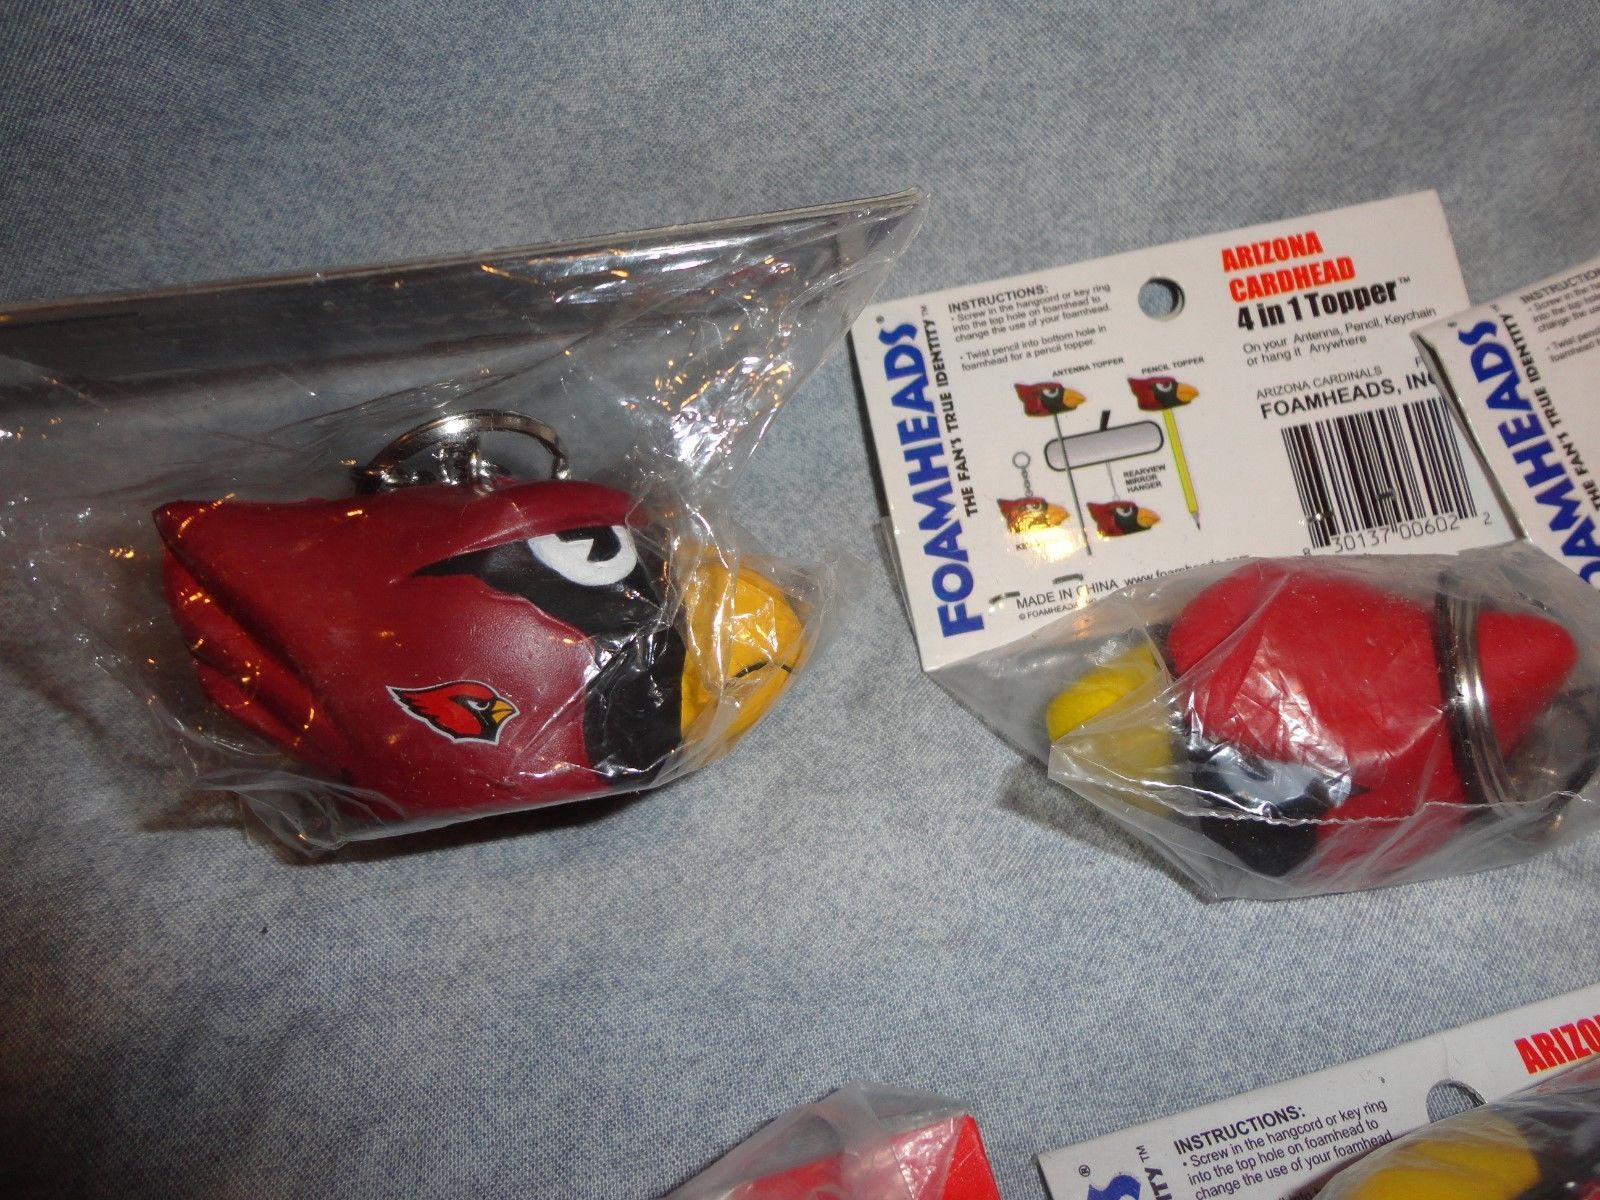 a317890fc ARIZONA CARDINALS CARDHEAD FOAMHEAD 4 IN 1 TOPPER SET 10 KEYCHAIN TOPPER ETC